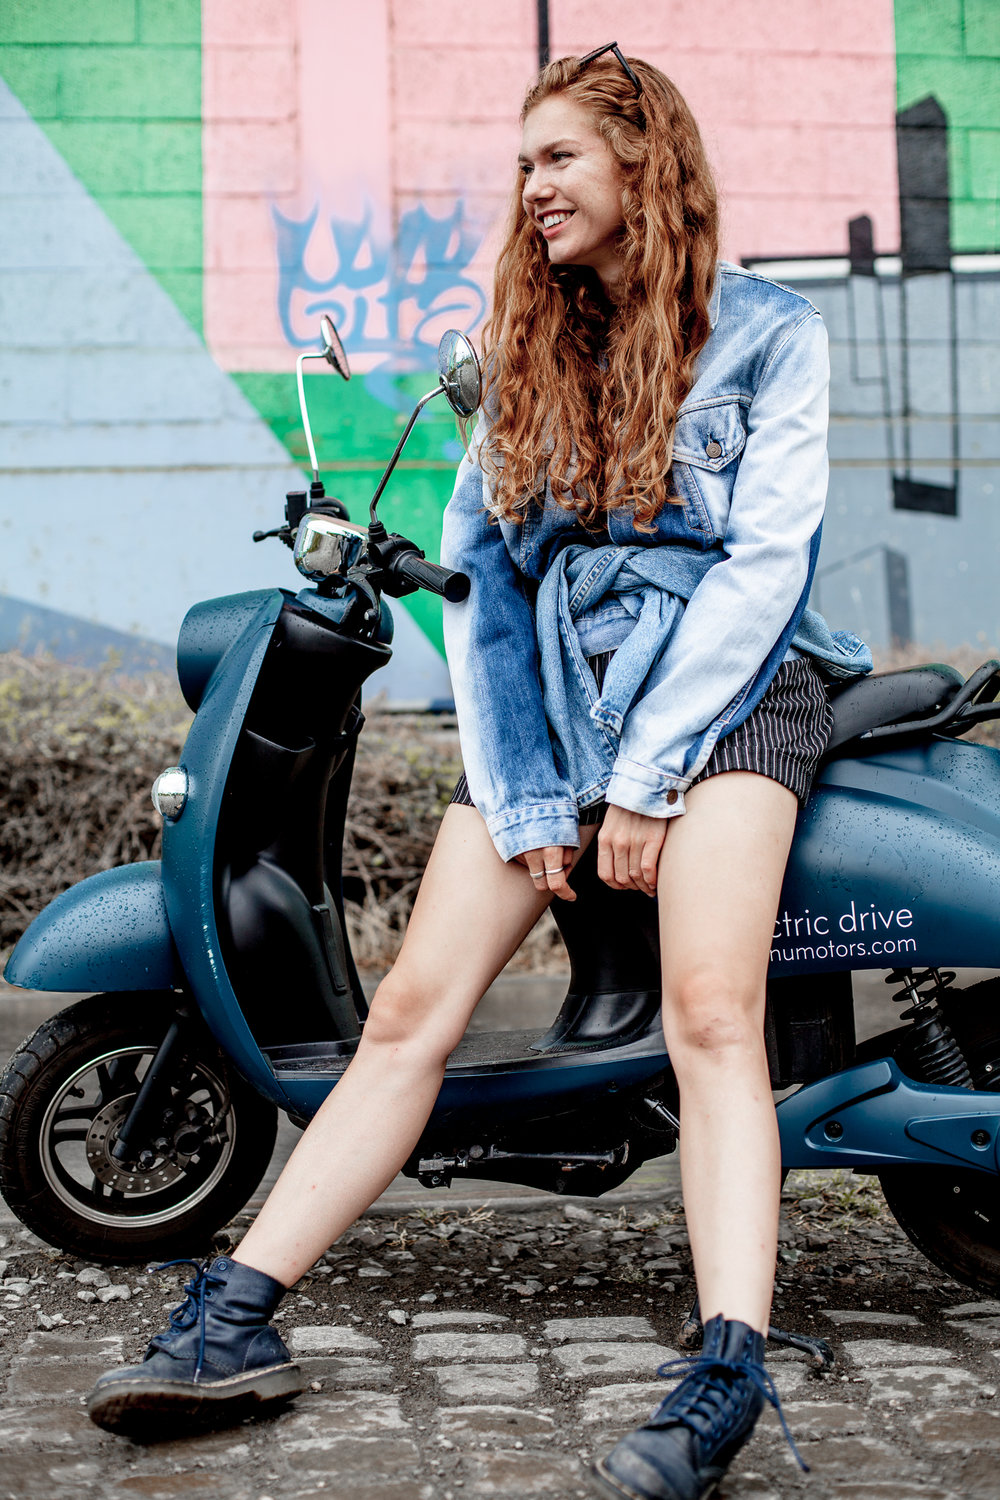 Photos taken during a shoot by VinoKilo with the navy unu Scooter